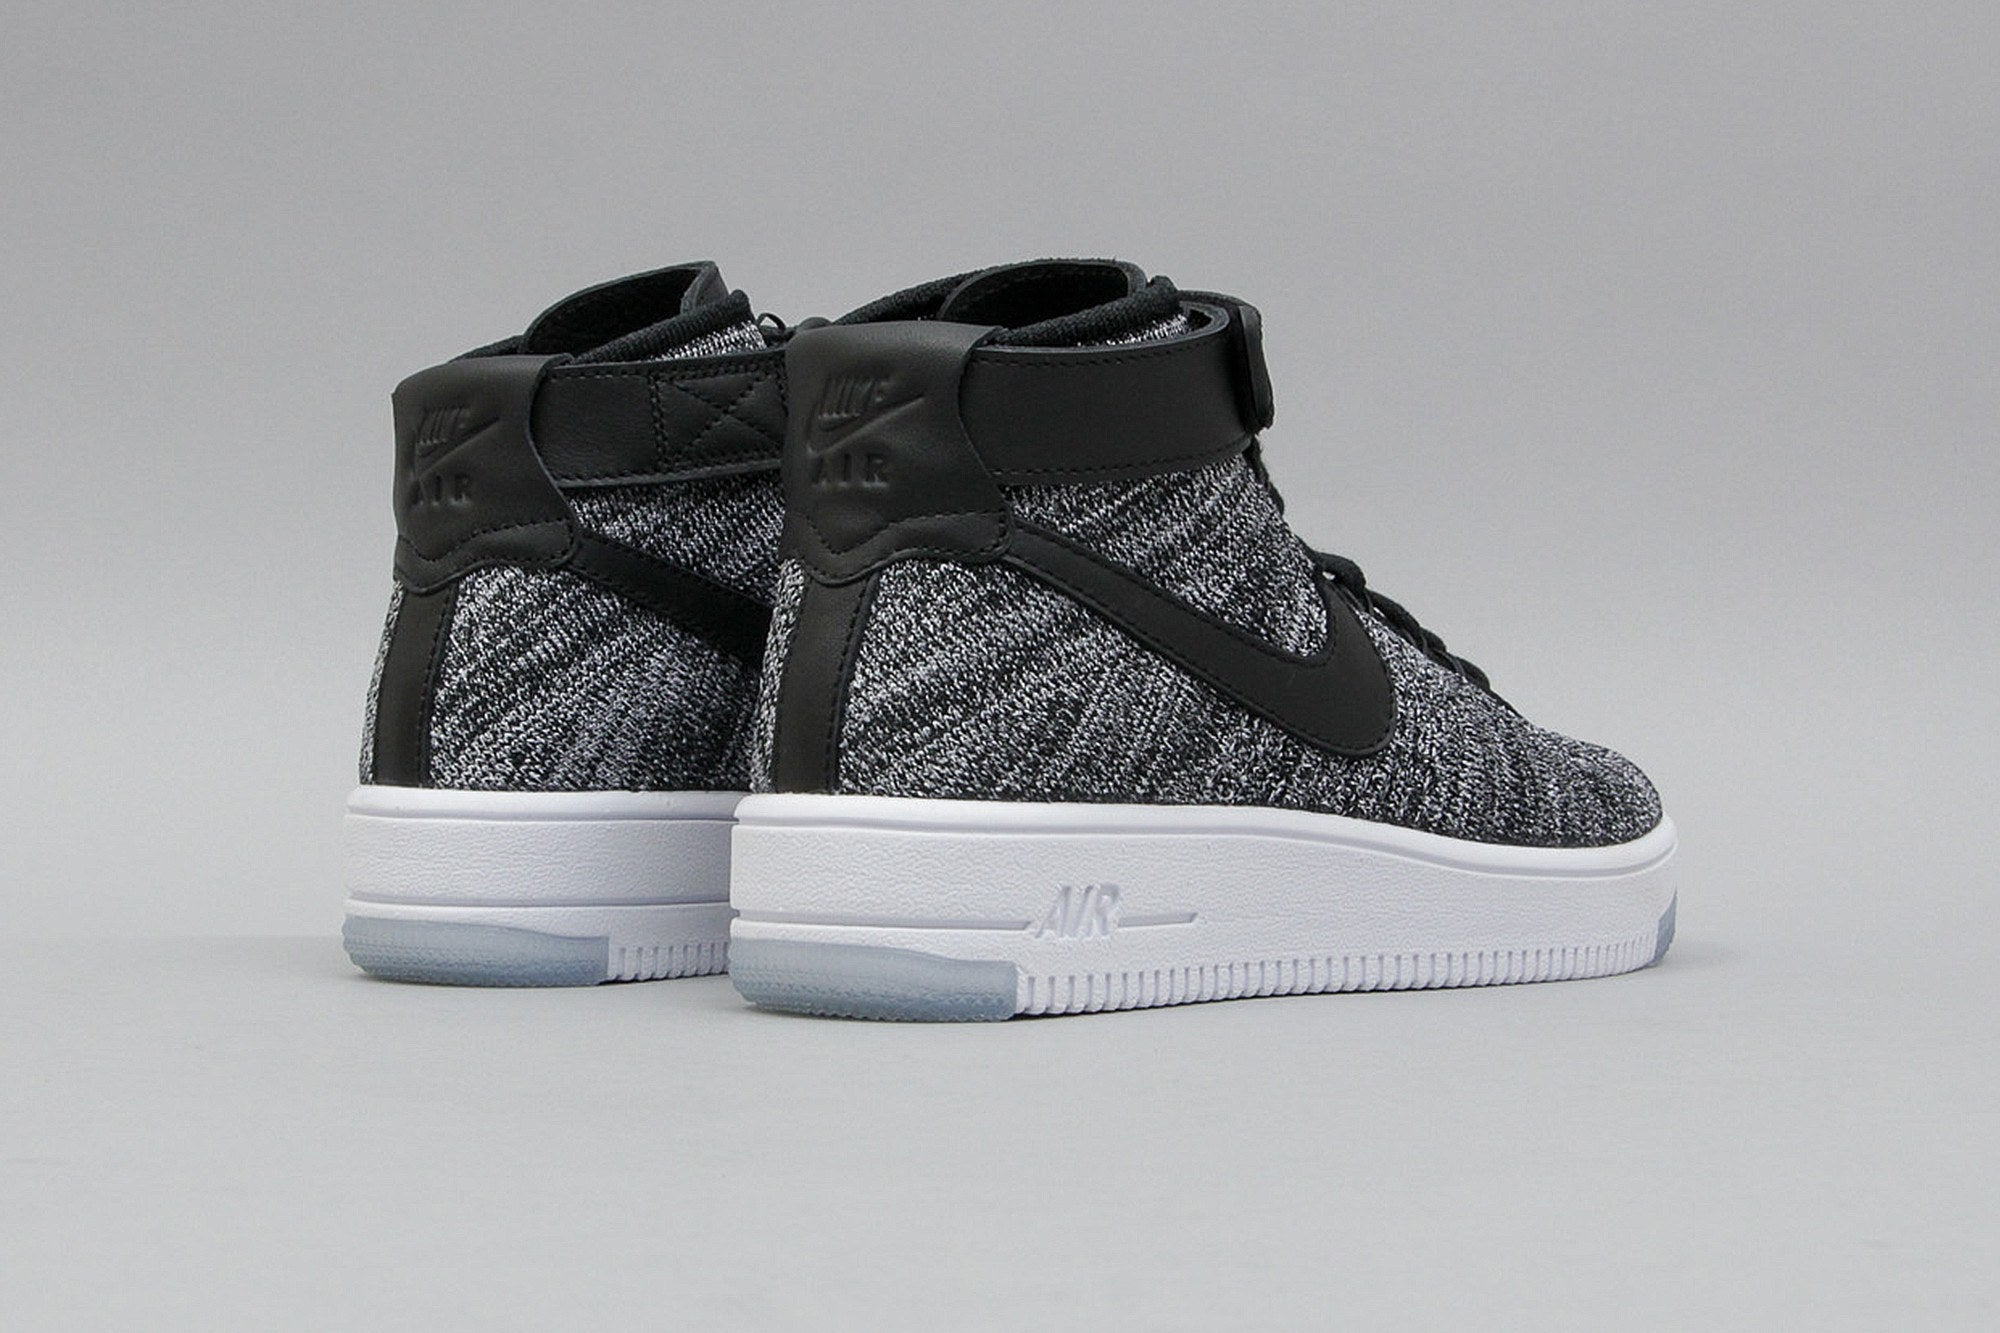 nike air force 1 oreo. Black Bedroom Furniture Sets. Home Design Ideas